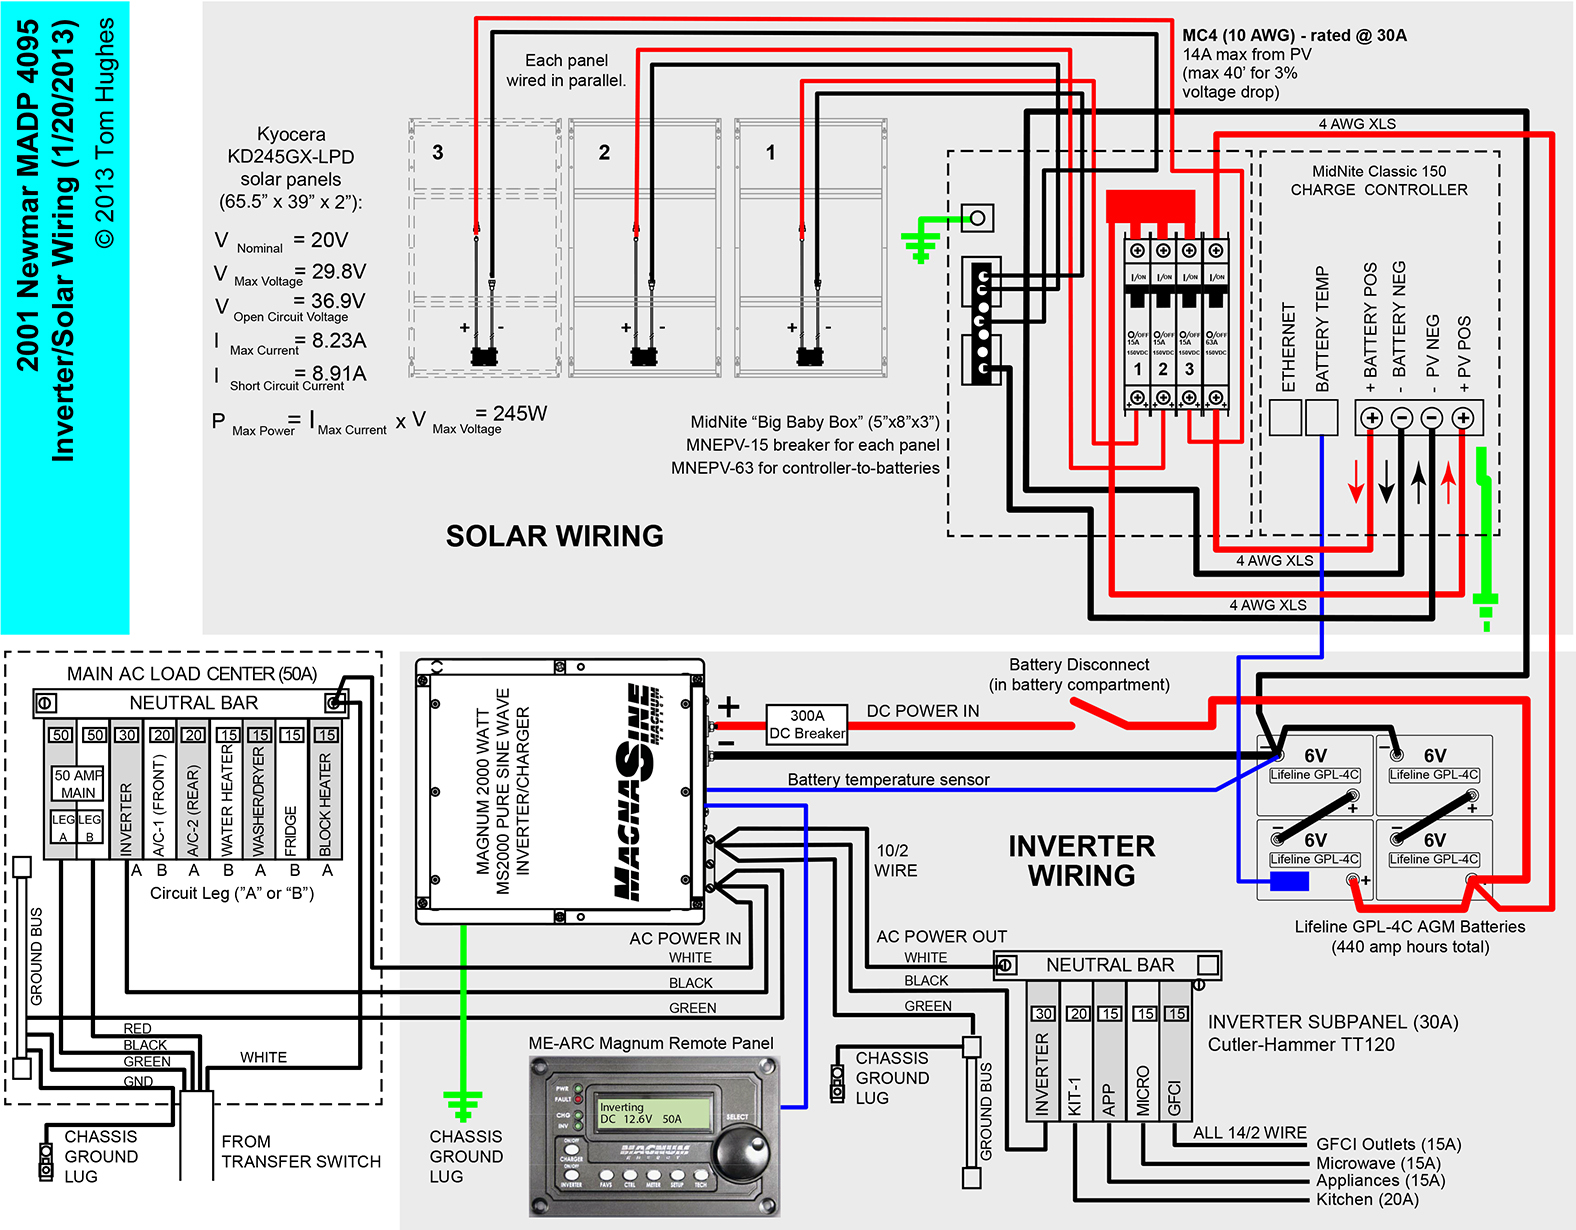 ms2000_newmar_inverter_wiring_01_20_2013 wiring diagram for a camper the wiring diagram readingrat net  at reclaimingppi.co